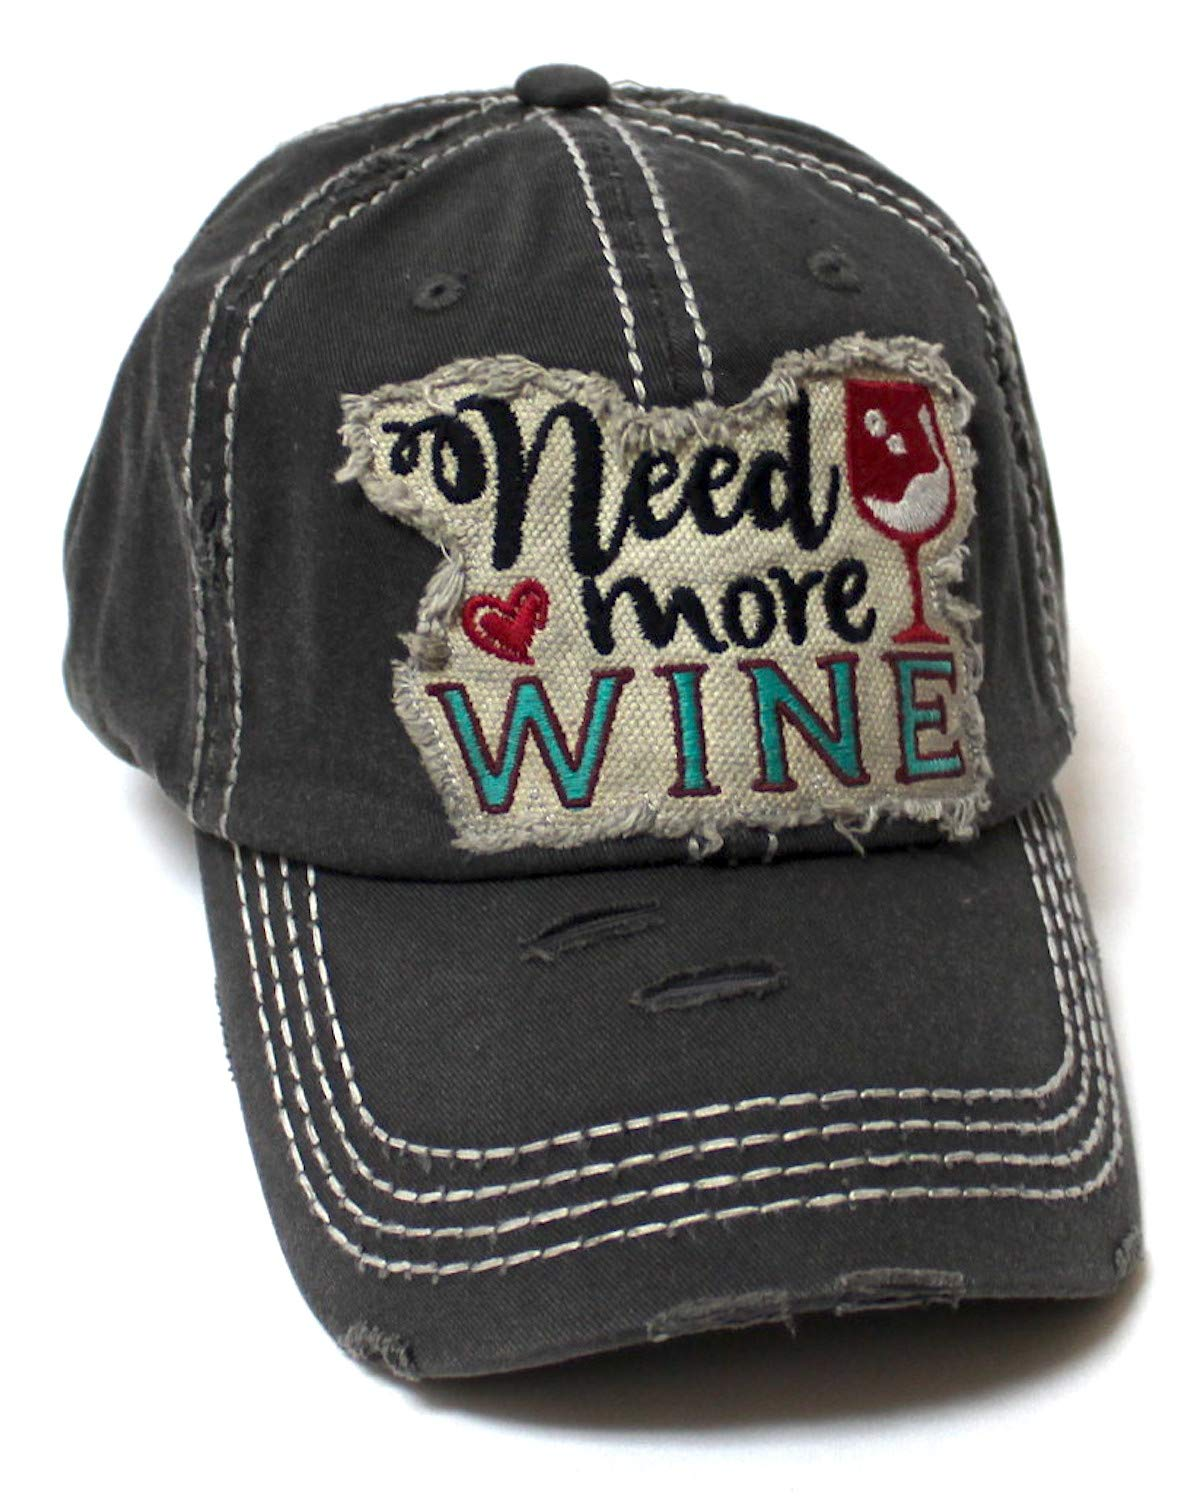 Women's Ballcap Need More Wine for The Love of Vino Patch Embroidery Hat, Vintage Black